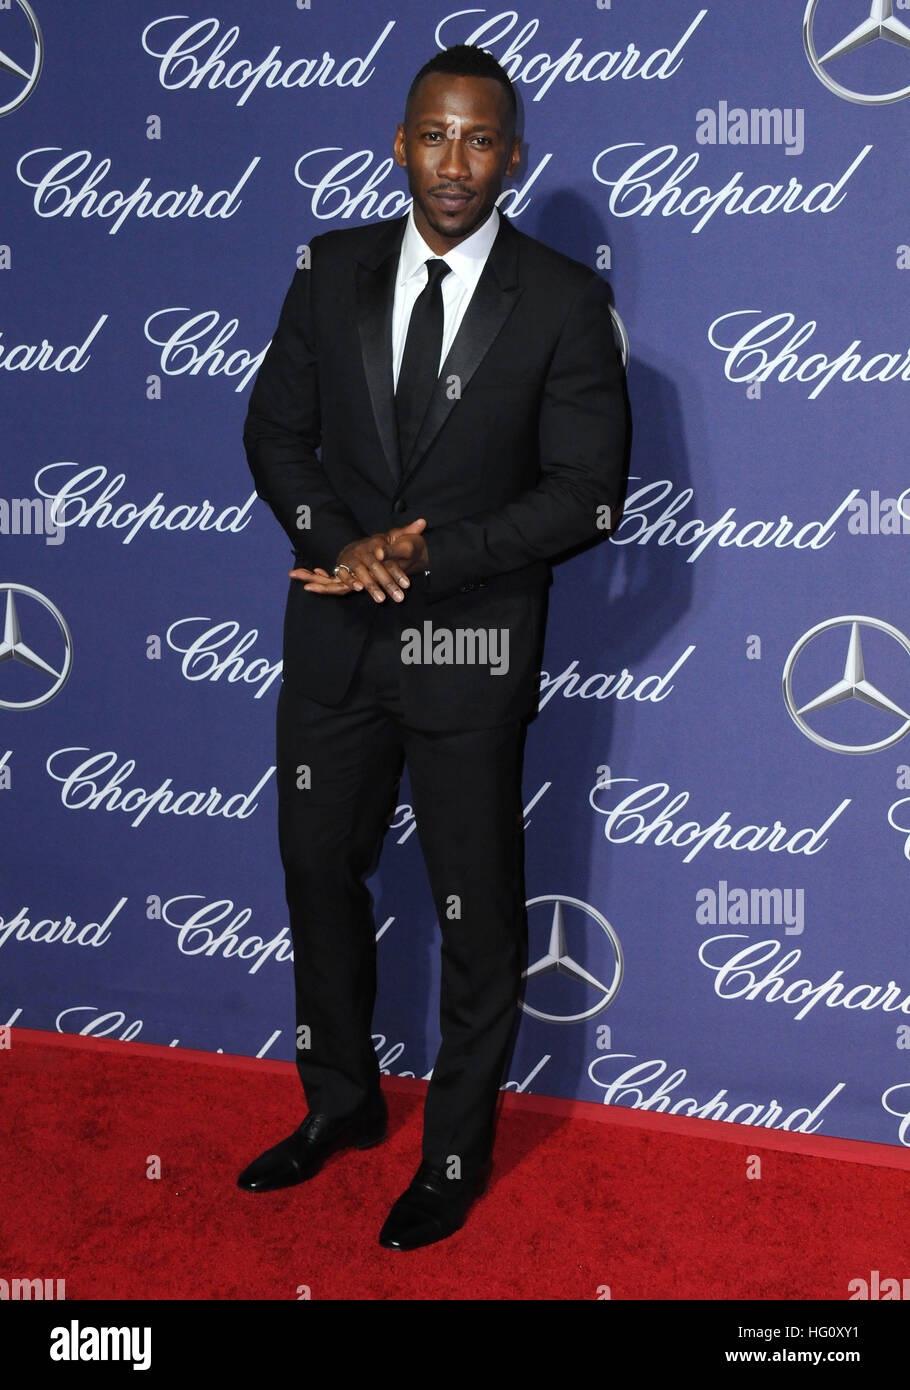 Palm Springs, CA, USA. 2 Jan, 2017. 02 janvier 2017 - Palm Springs, Californie - Mahershala Ali. 2017 Festival International Photo Stock